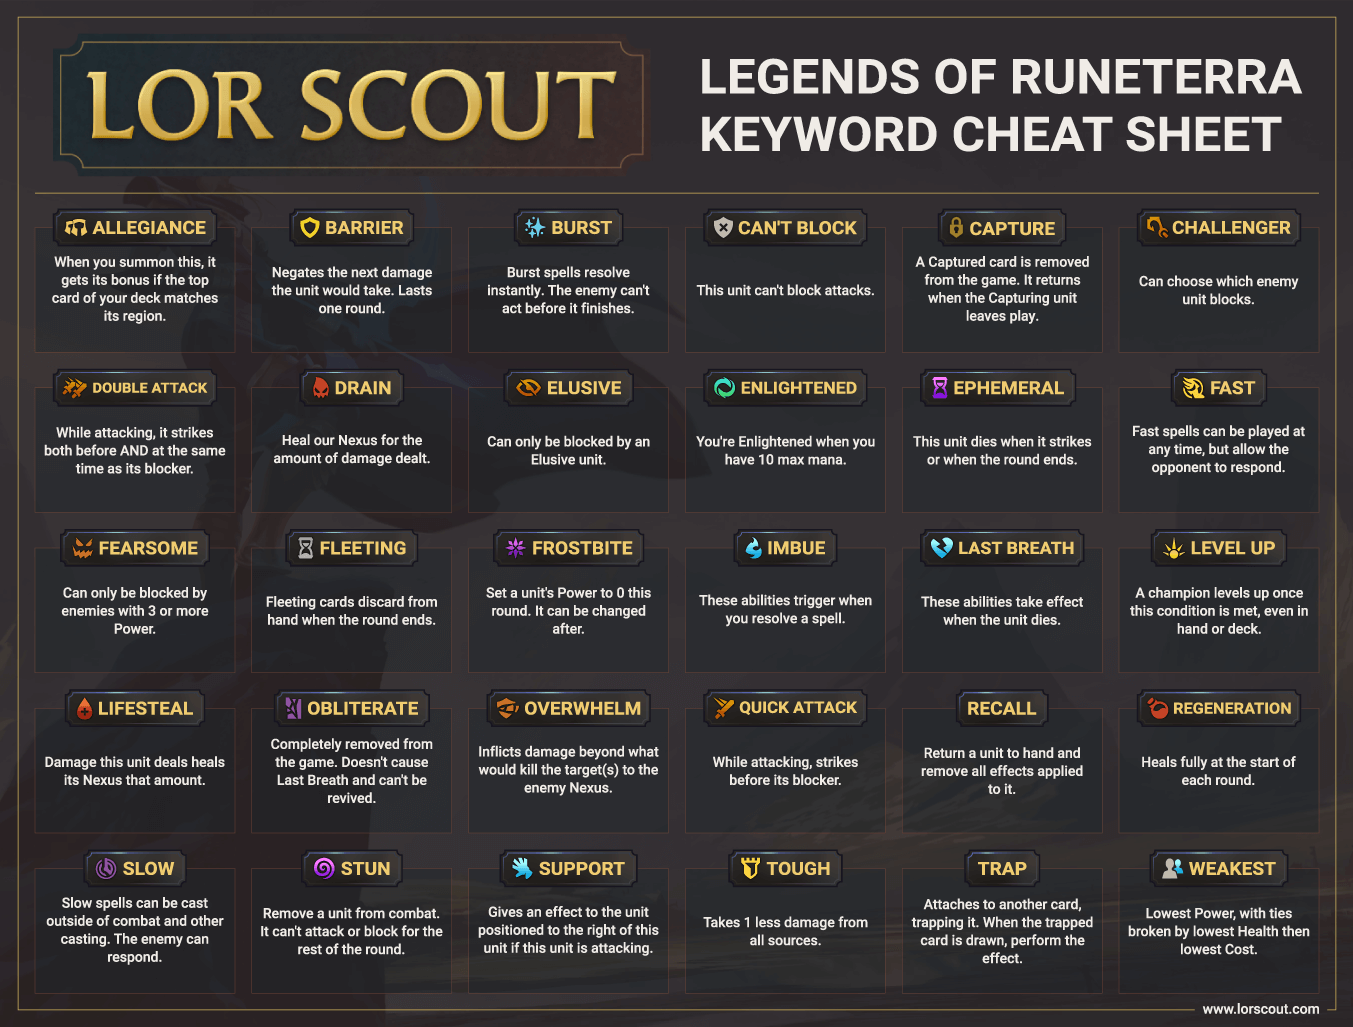 A chart of the Legends of Runeterra keywords and meanings